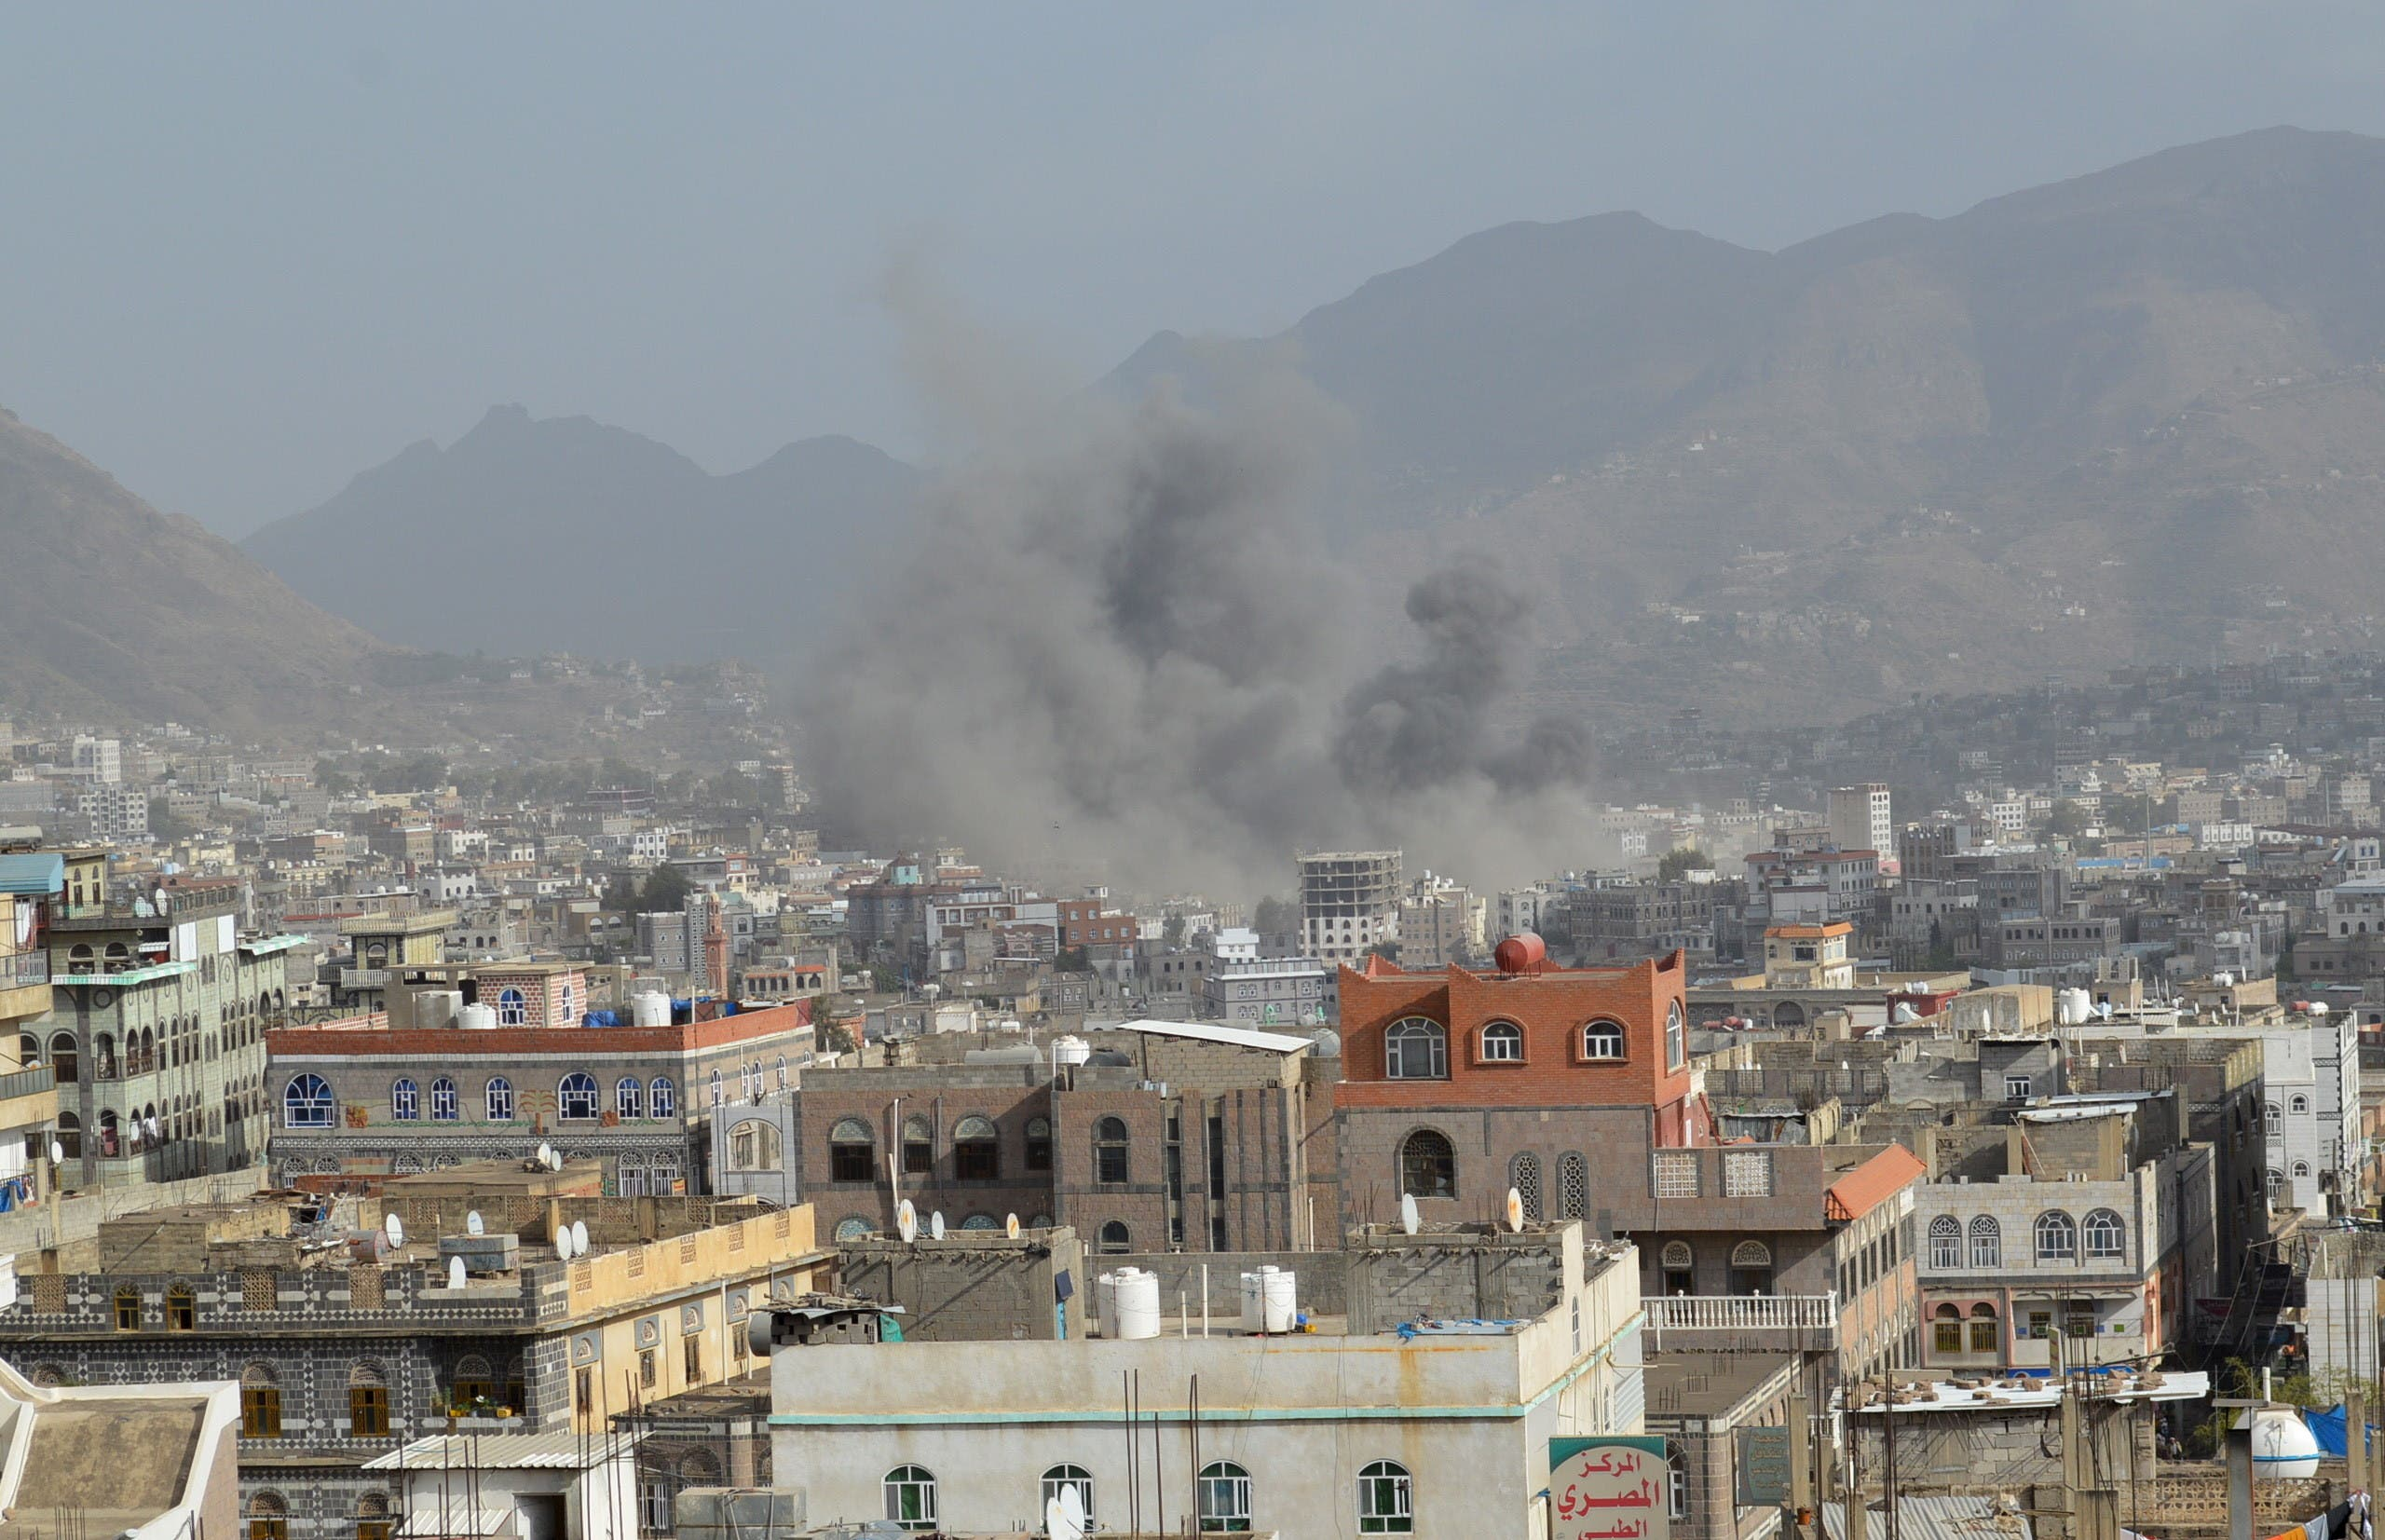 Smoke billows after an air strike in Yemen's central city of Ibb. (File photo: Reuters)